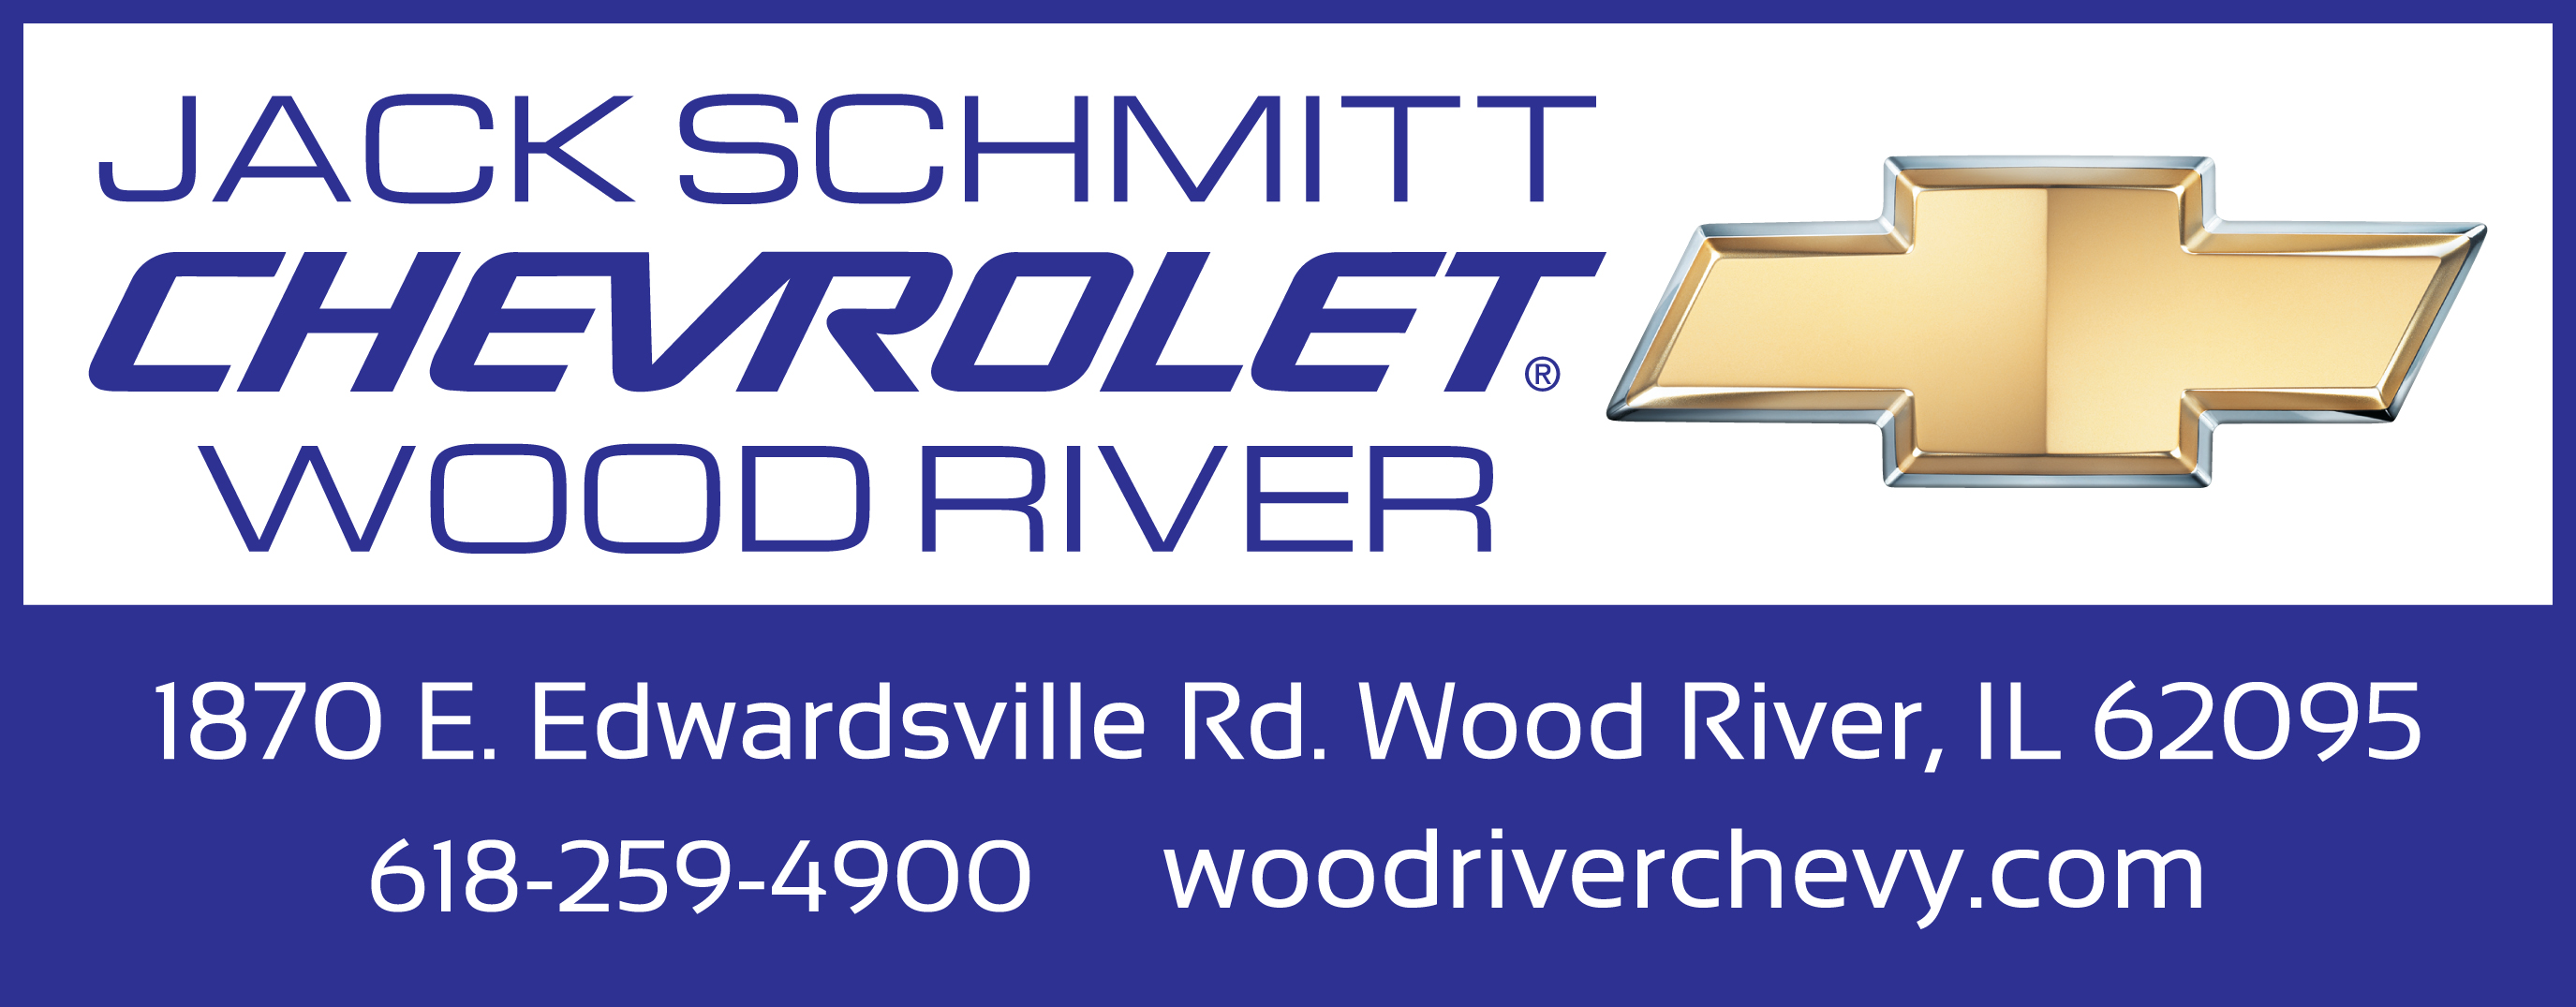 Jack Schmitt Chevrolet Wood River Il >> Car Raffle Gift Of Voice